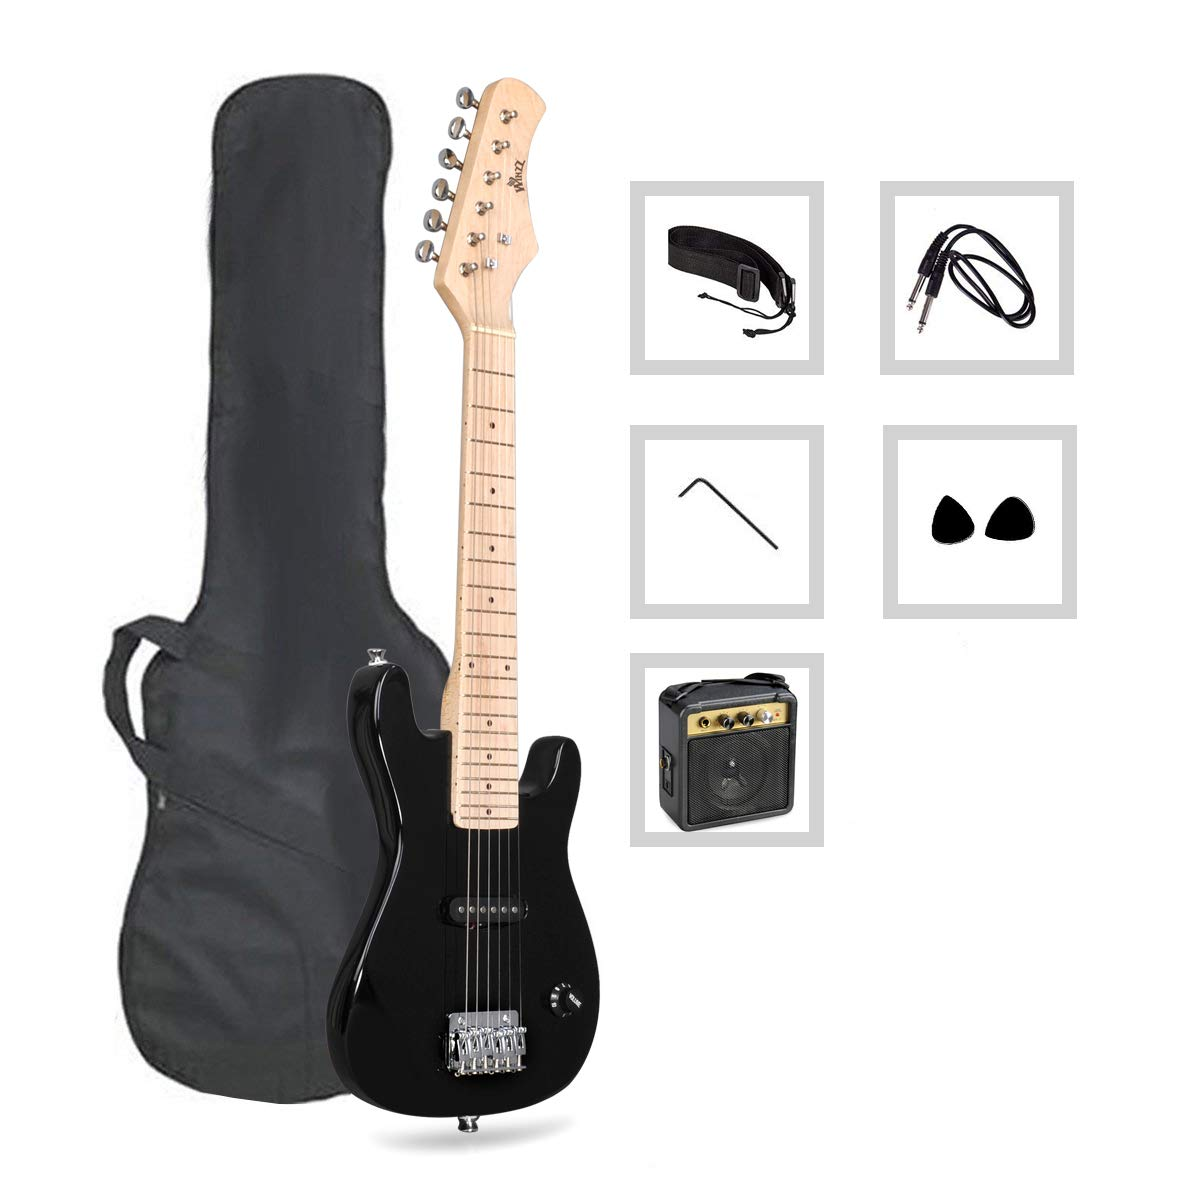 30'' Mini Electric Guitar for Kids with Gig Bag, Cable, Strap, 2 Picks, Amplifier and Wrench